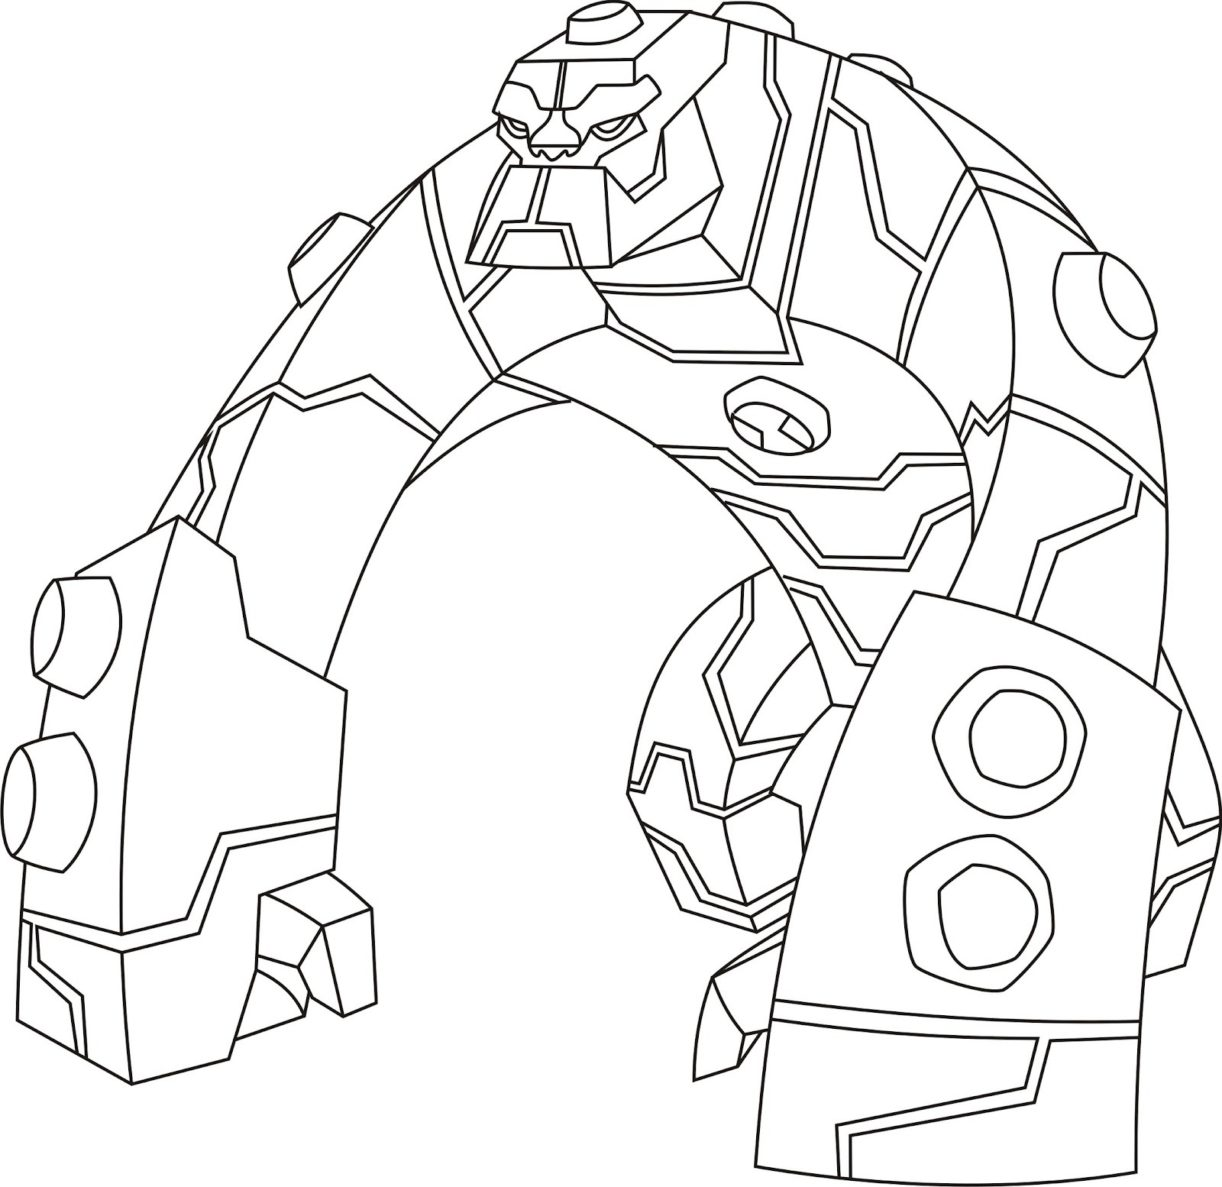 Tipos de desenhos do ben 10 para colorir e imprimir for Ben 10 coloring pages games